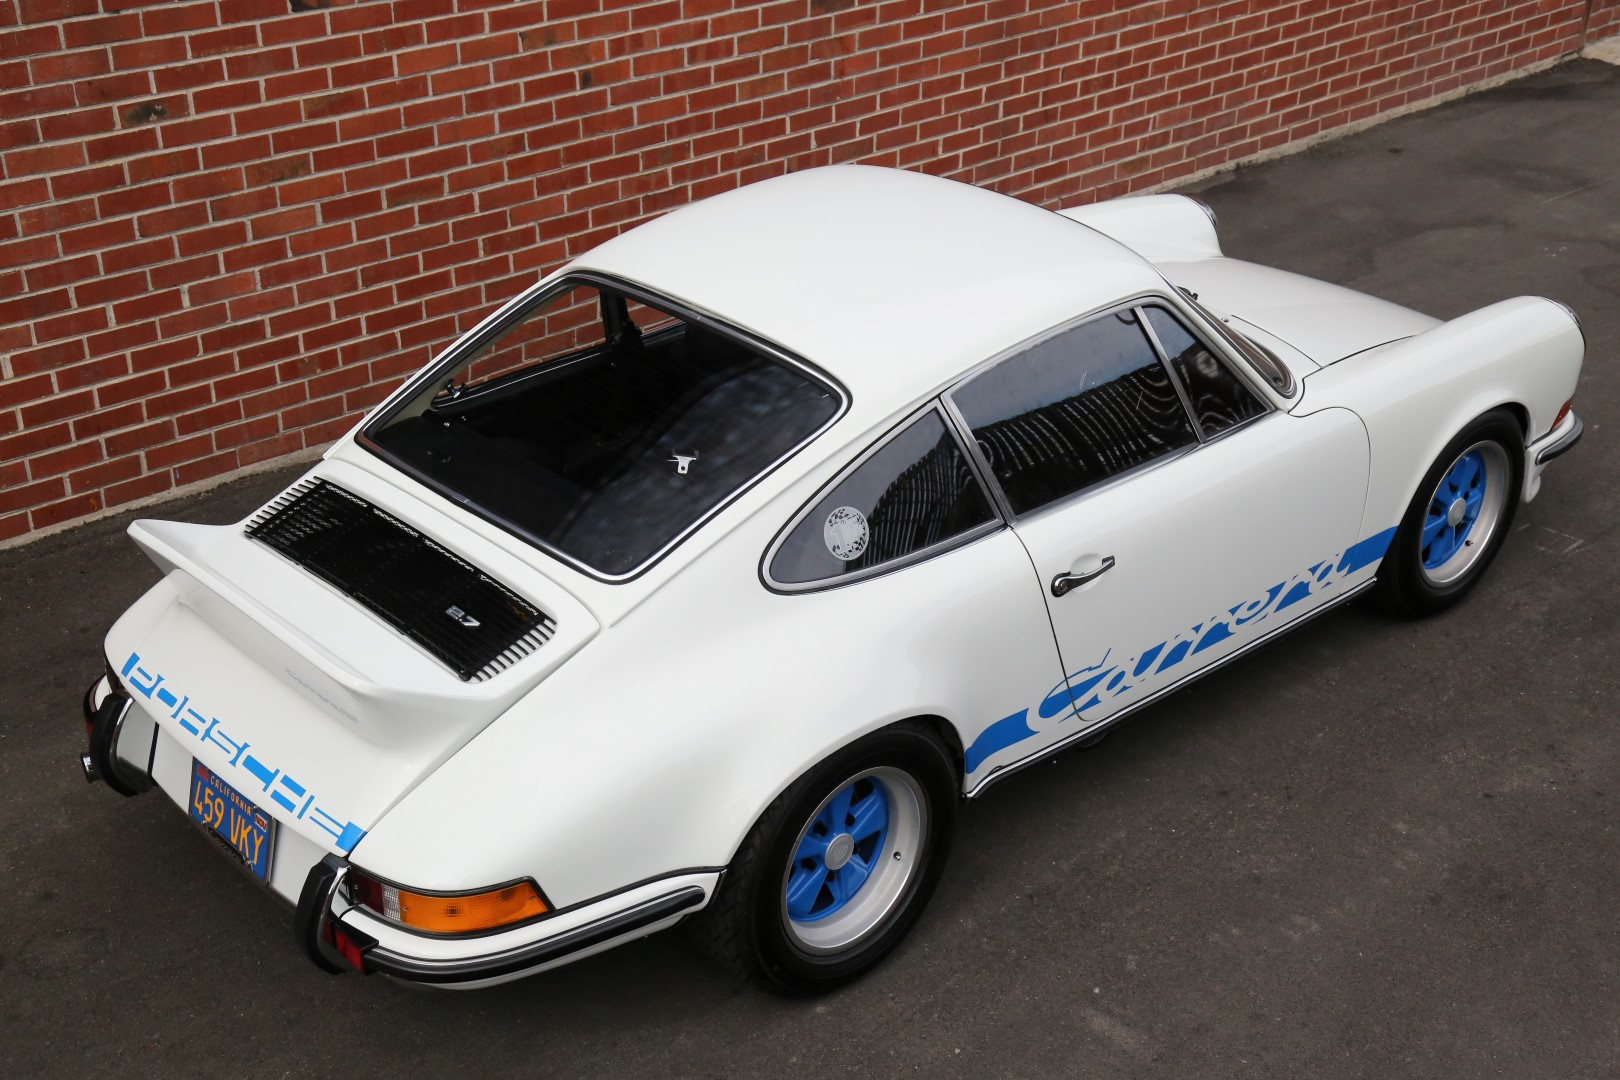 Porsche-911-Carrera-RS-2.7-1973-for-sale-2